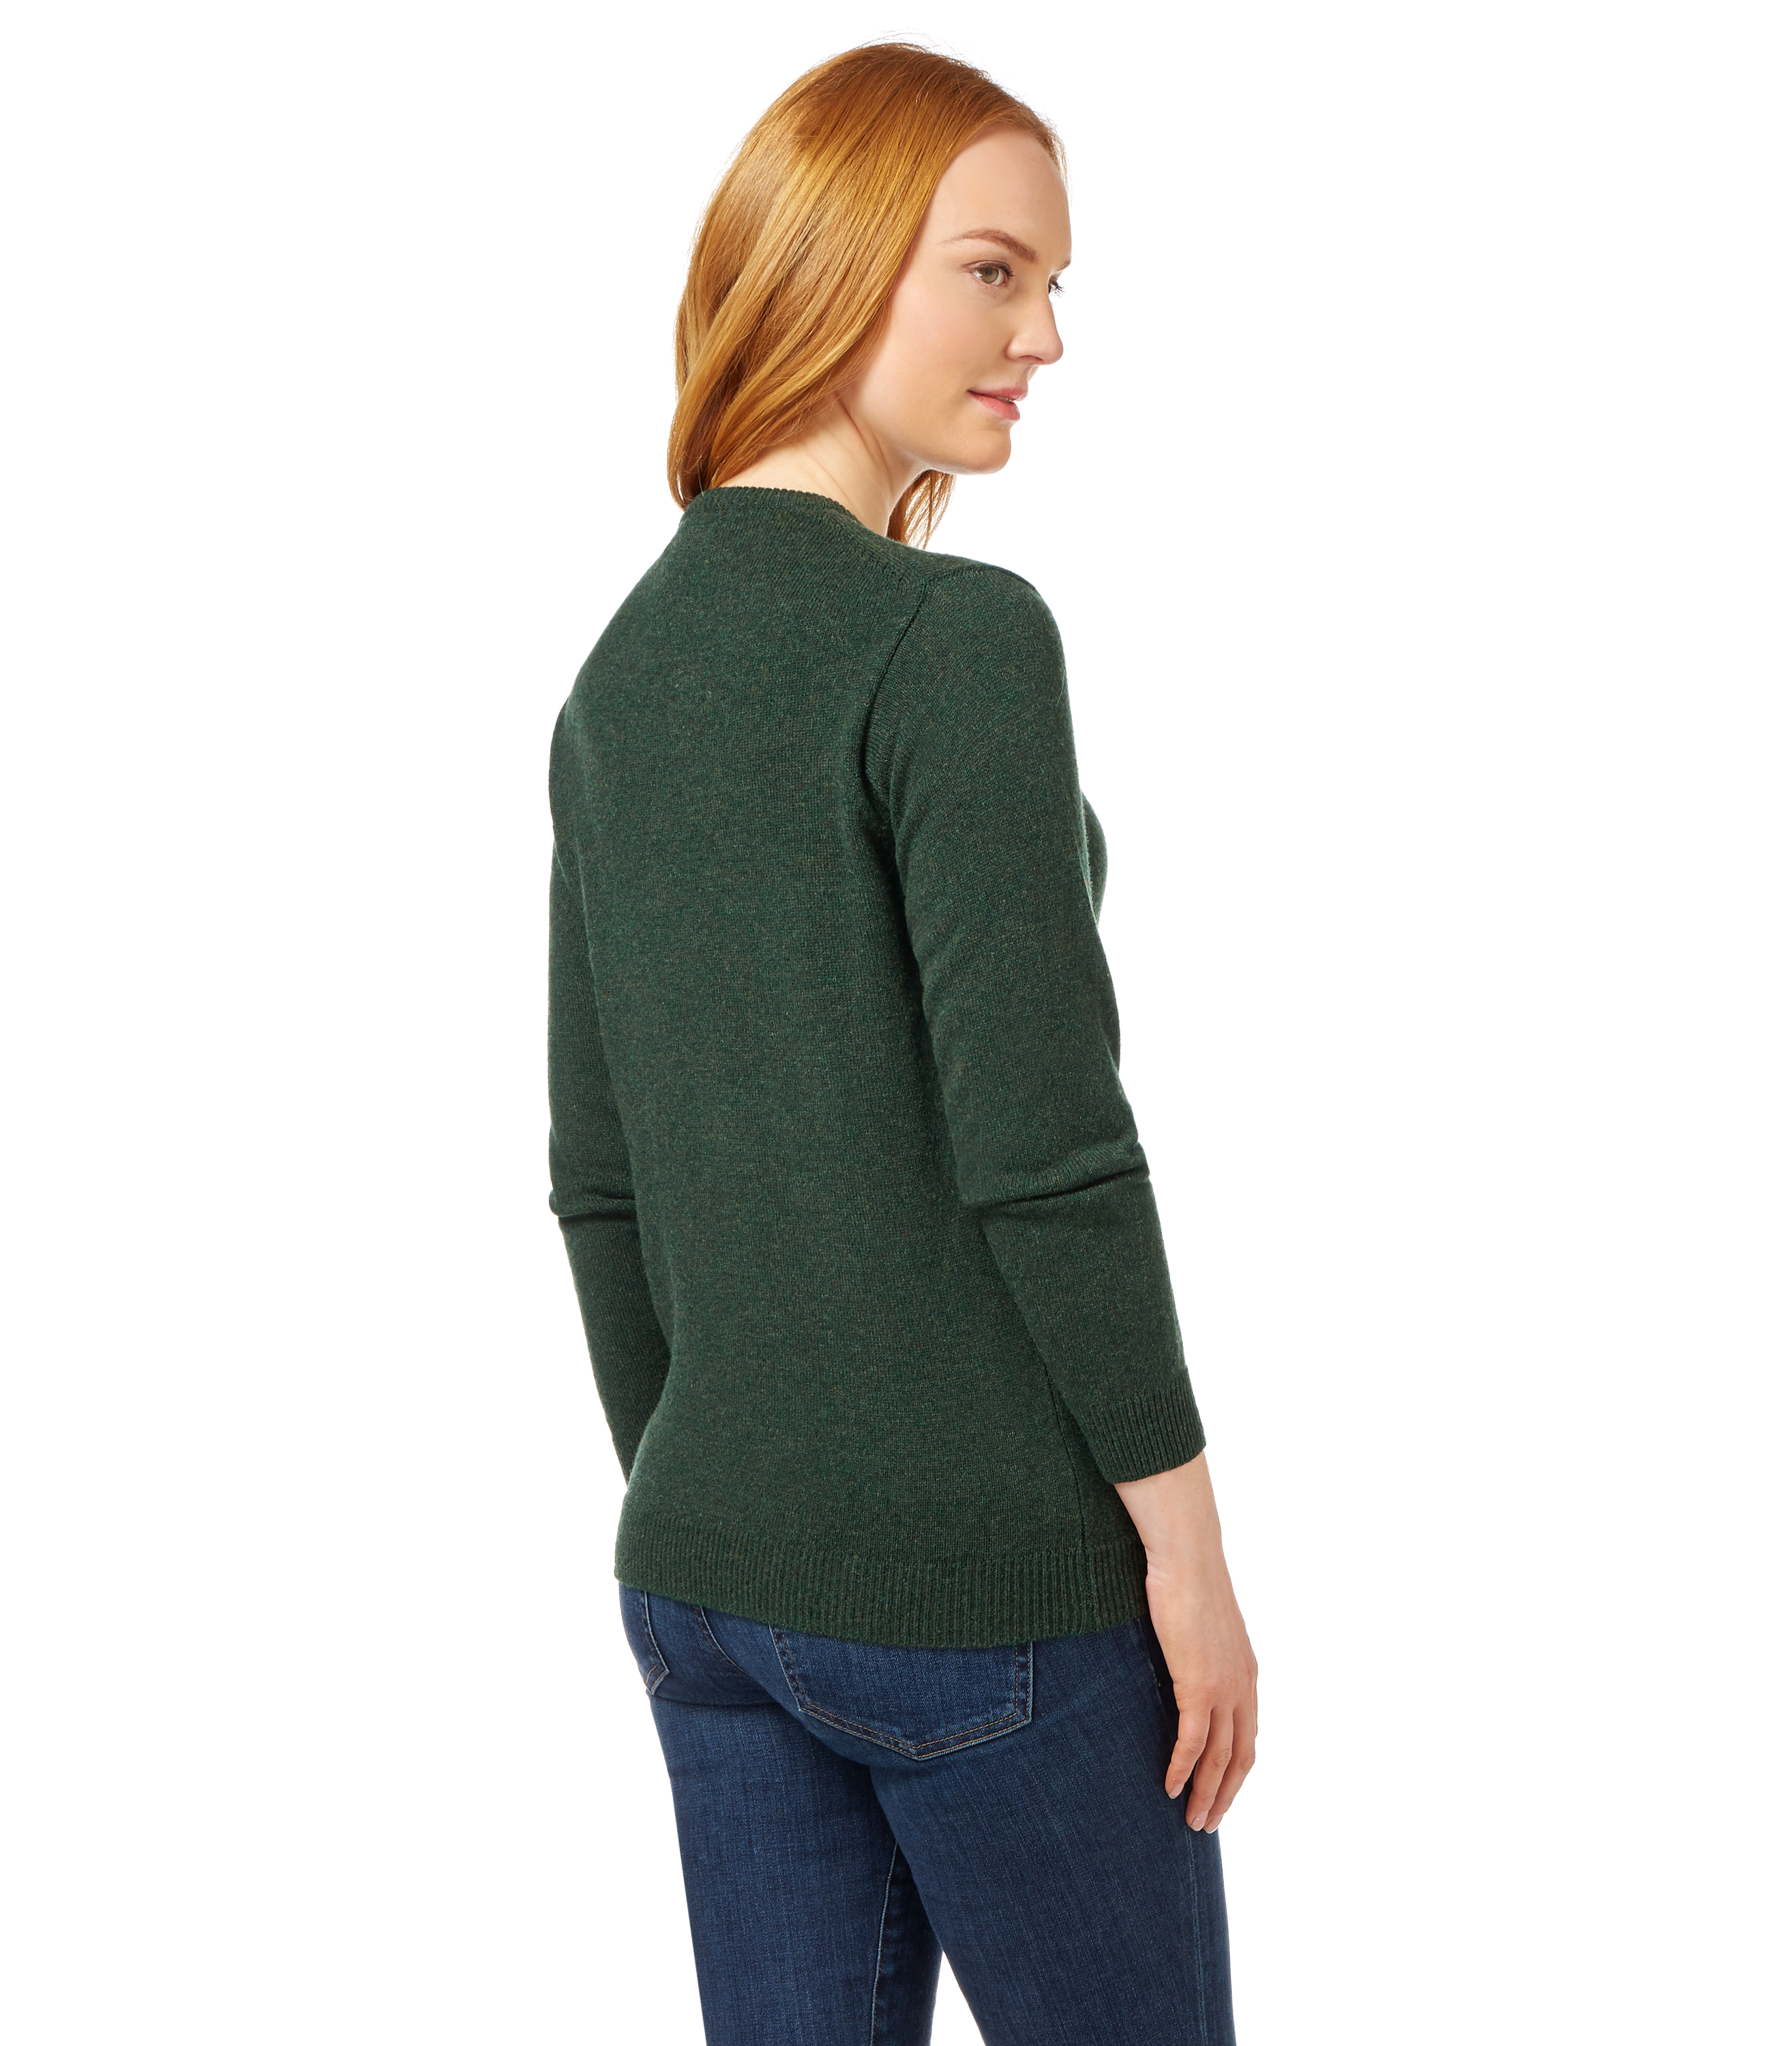 Find warm from a vast selection of Women's Clothing and Sweaters. Get great deals on eBay!